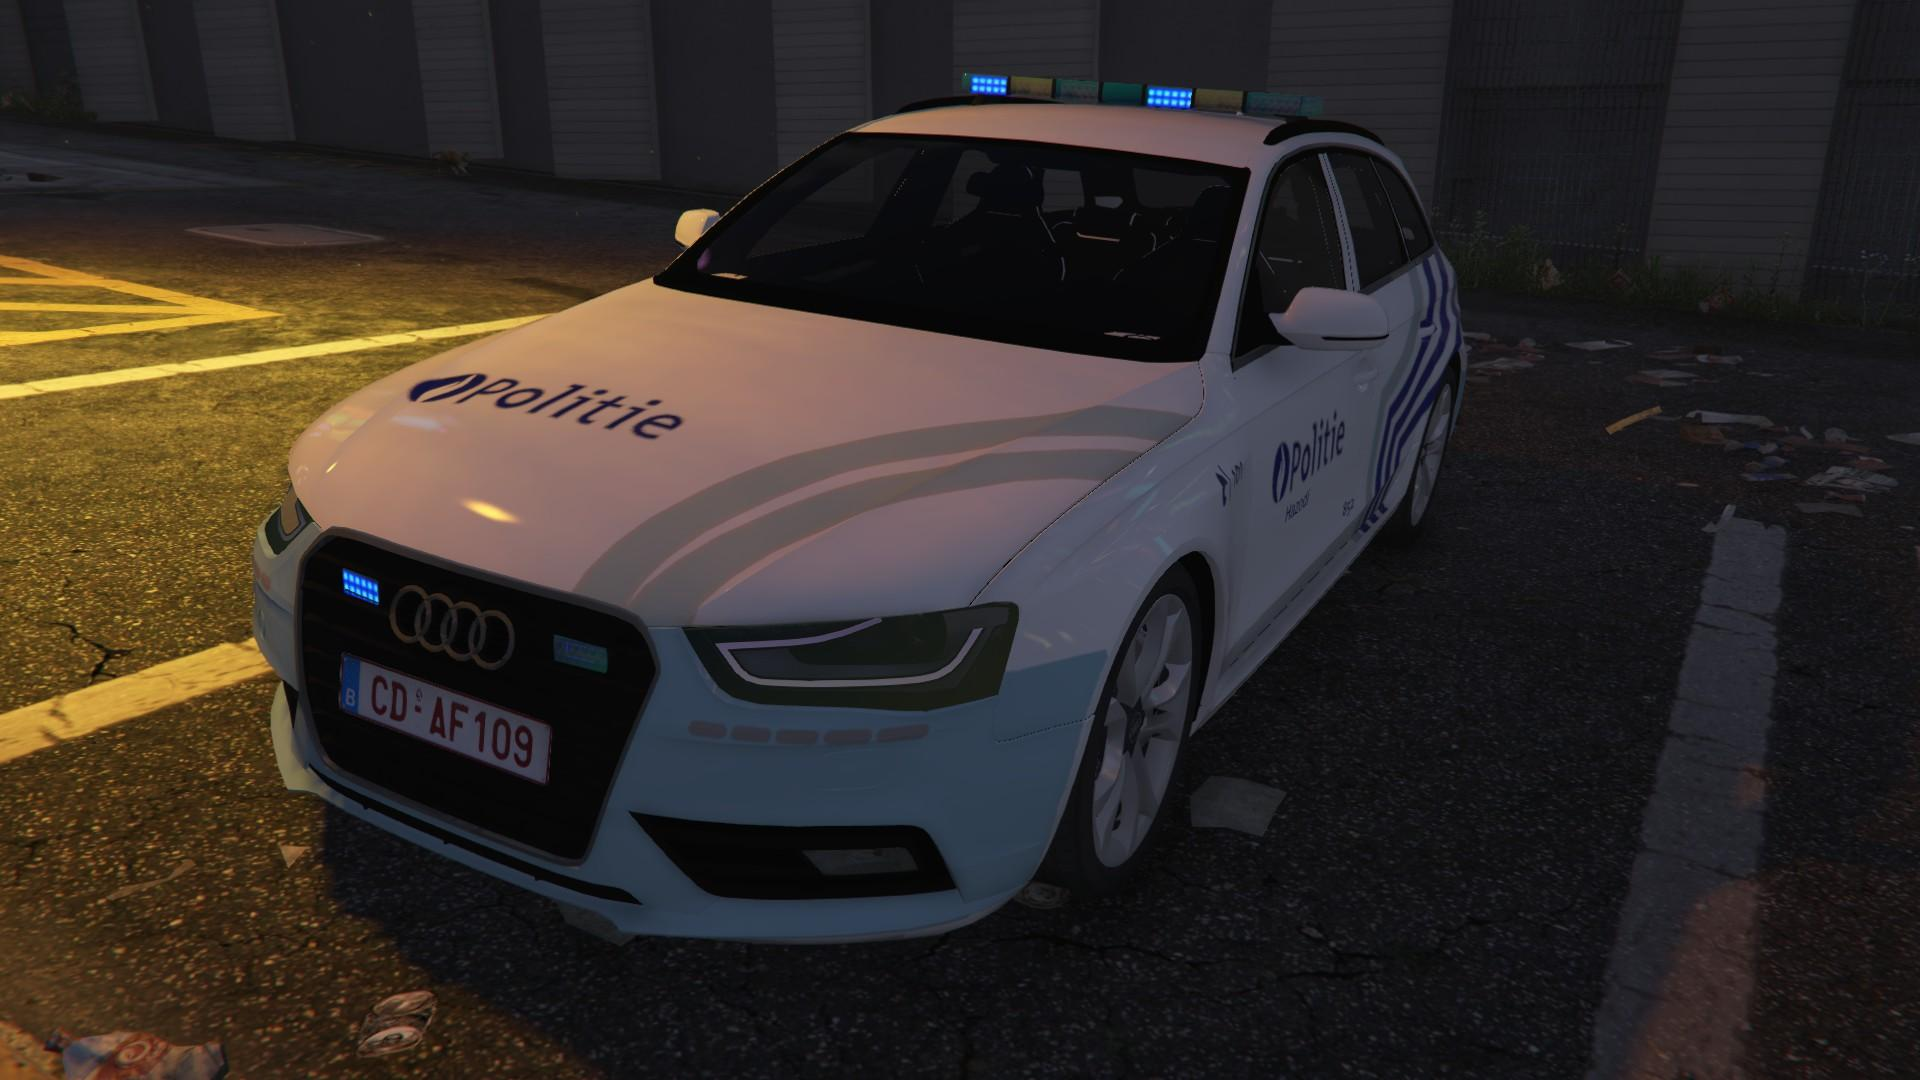 gta 4 cheats for helicopter with Audi A4 Lokale Politie Belgie Audi A4 Belgian Local Police on Tav 37 Valkyrie Ssto Shuttle From Avatar together with 9035 Jetpack additionally Wallpaper additionally 27866 Buckingham Valkyrie Mod 0 moreover 71689 Bell Uh 1d Huey Bundeswehr.